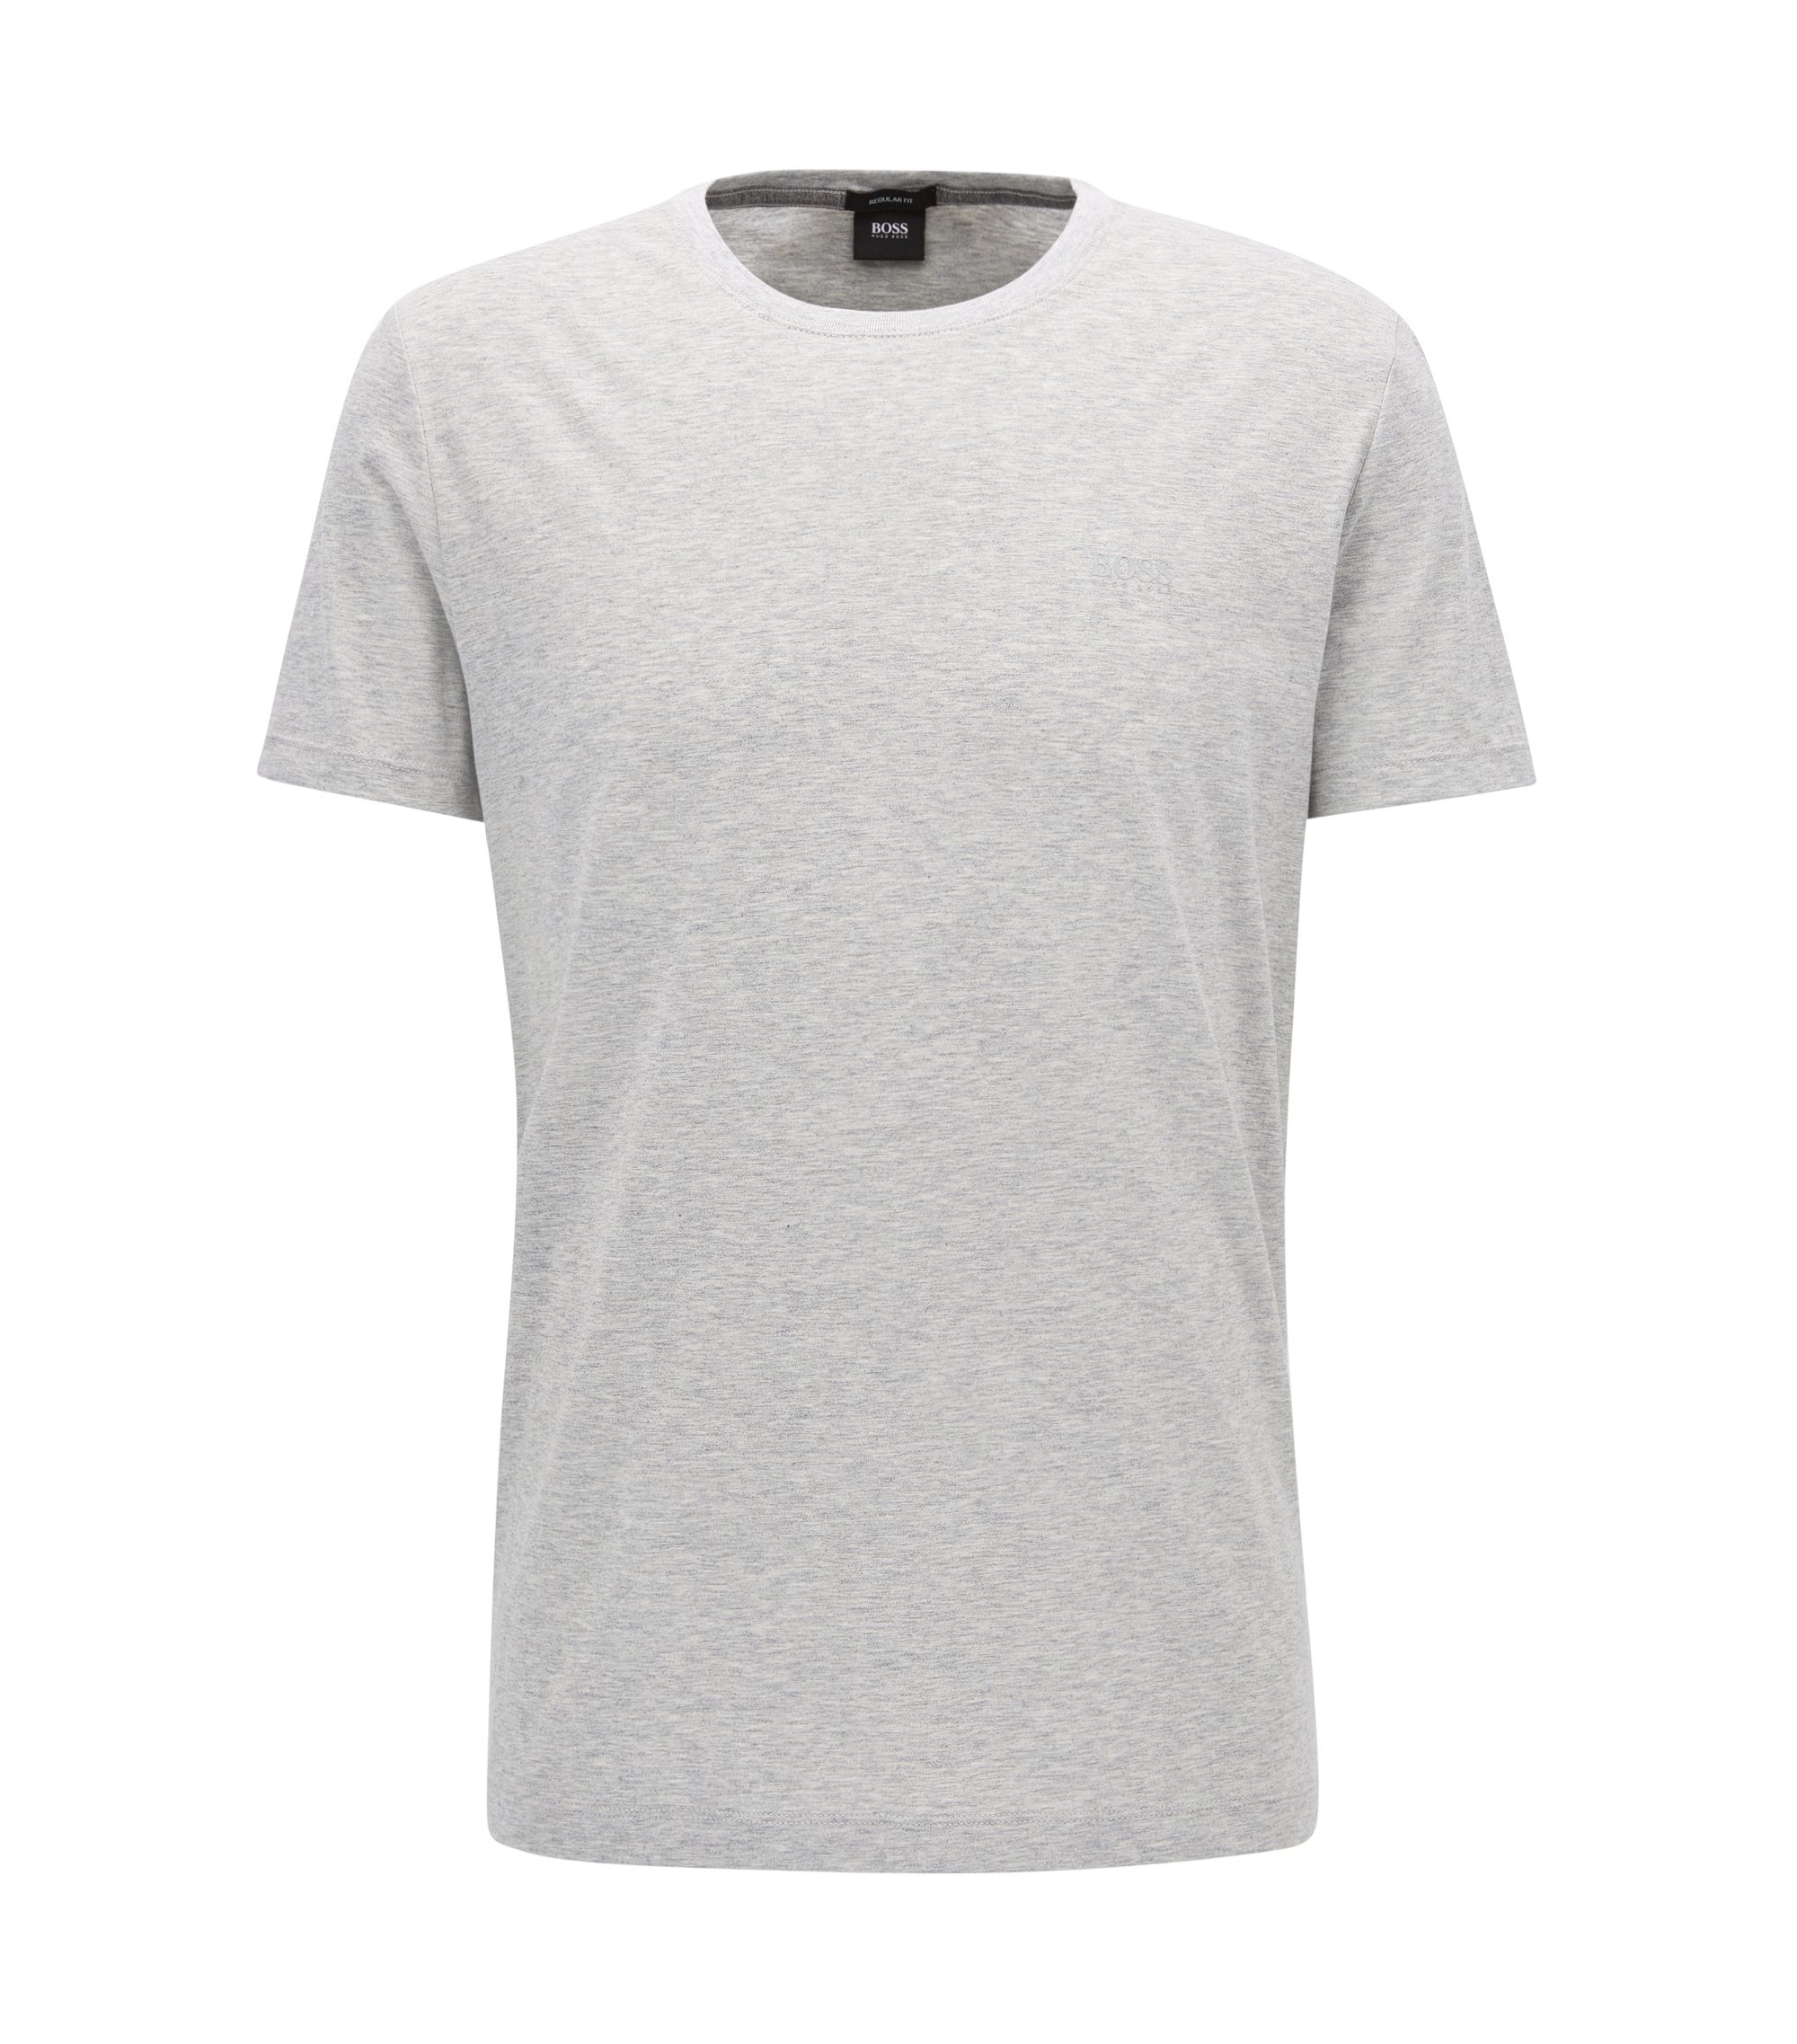 Regular-Fit T-Shirt aus weicher Baumwolle, Hellgrau